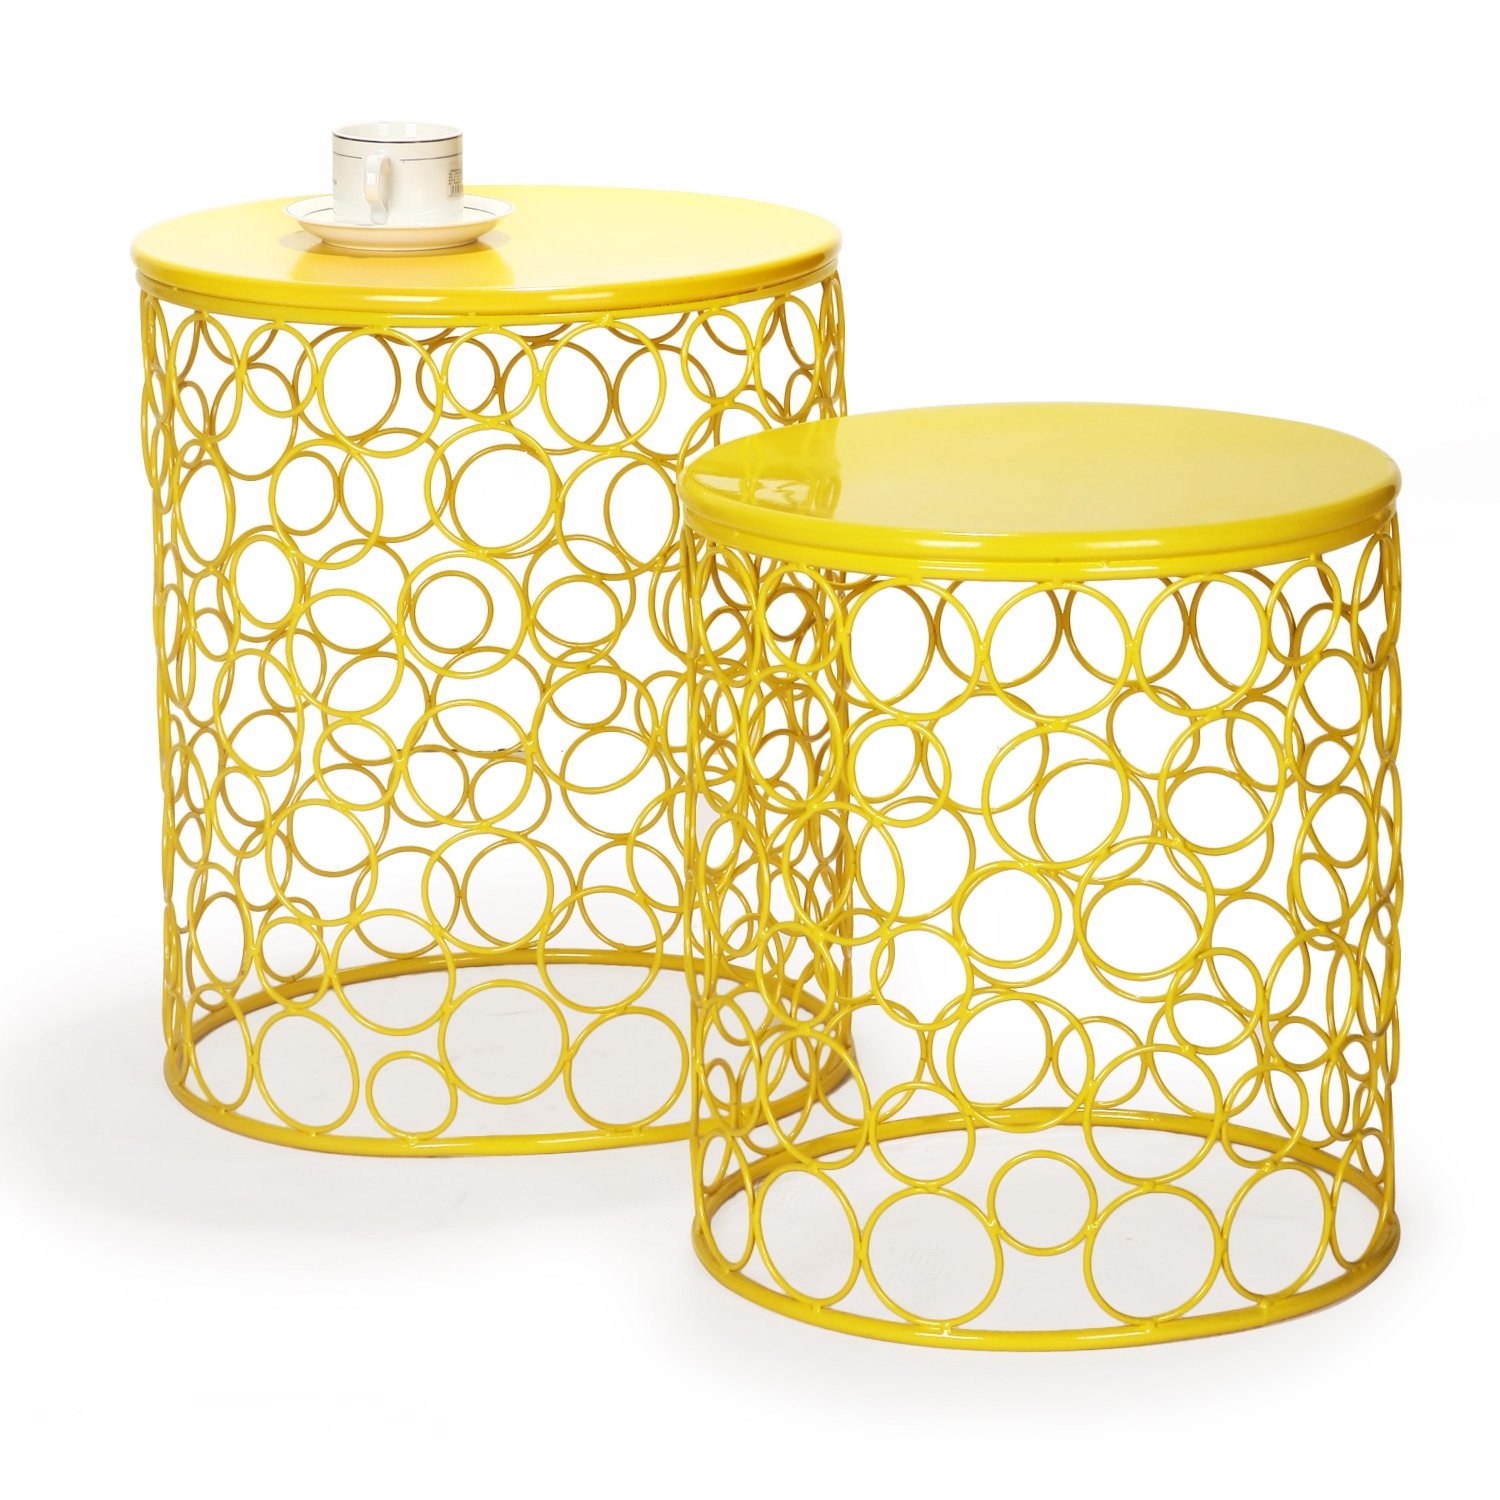 Adeco Home Garden Accents Circle Wired Round Iron Metal Nesting Stool Side End Table Plant Stand Bubble Pattern Set of Two CH0148 Olive Drab Green for Indoor Outdoor